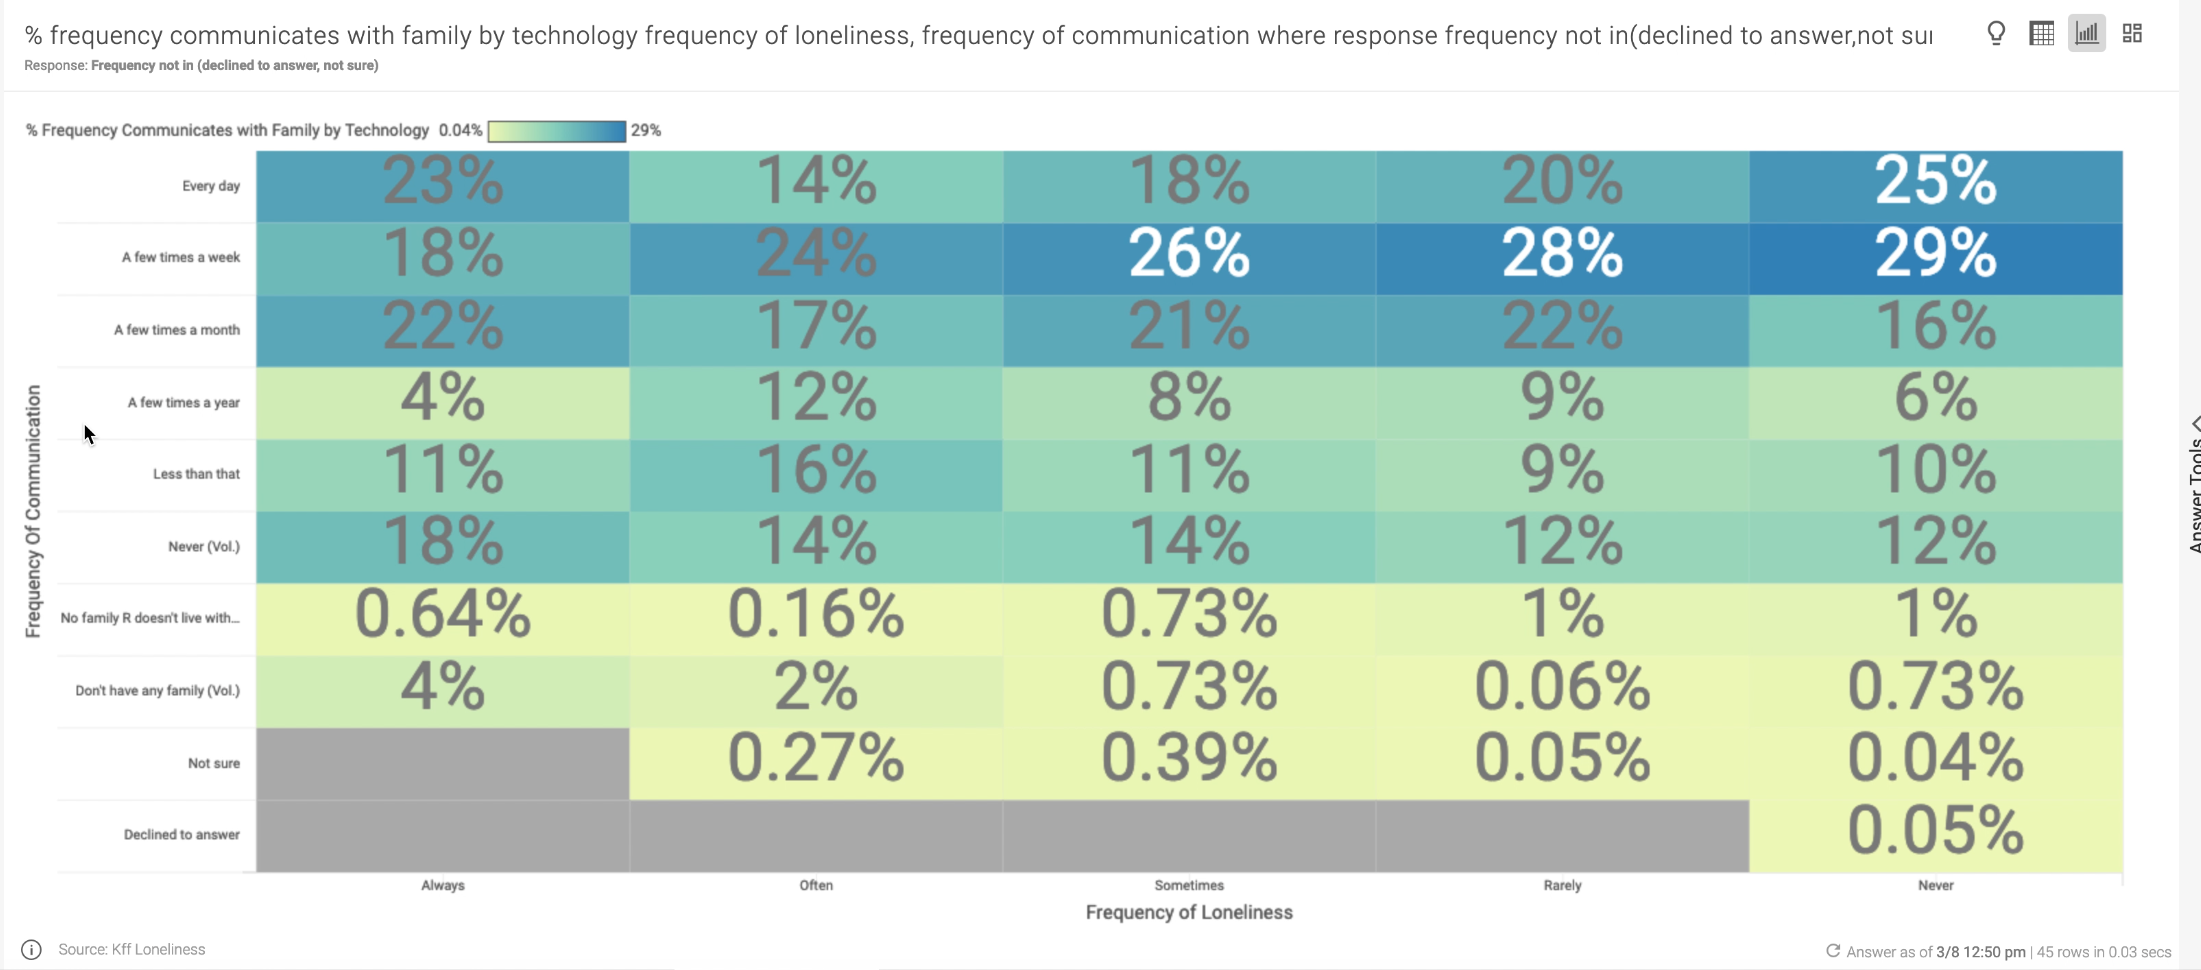 Gartner survey data showed that never lonely people used technology to communicate with family.